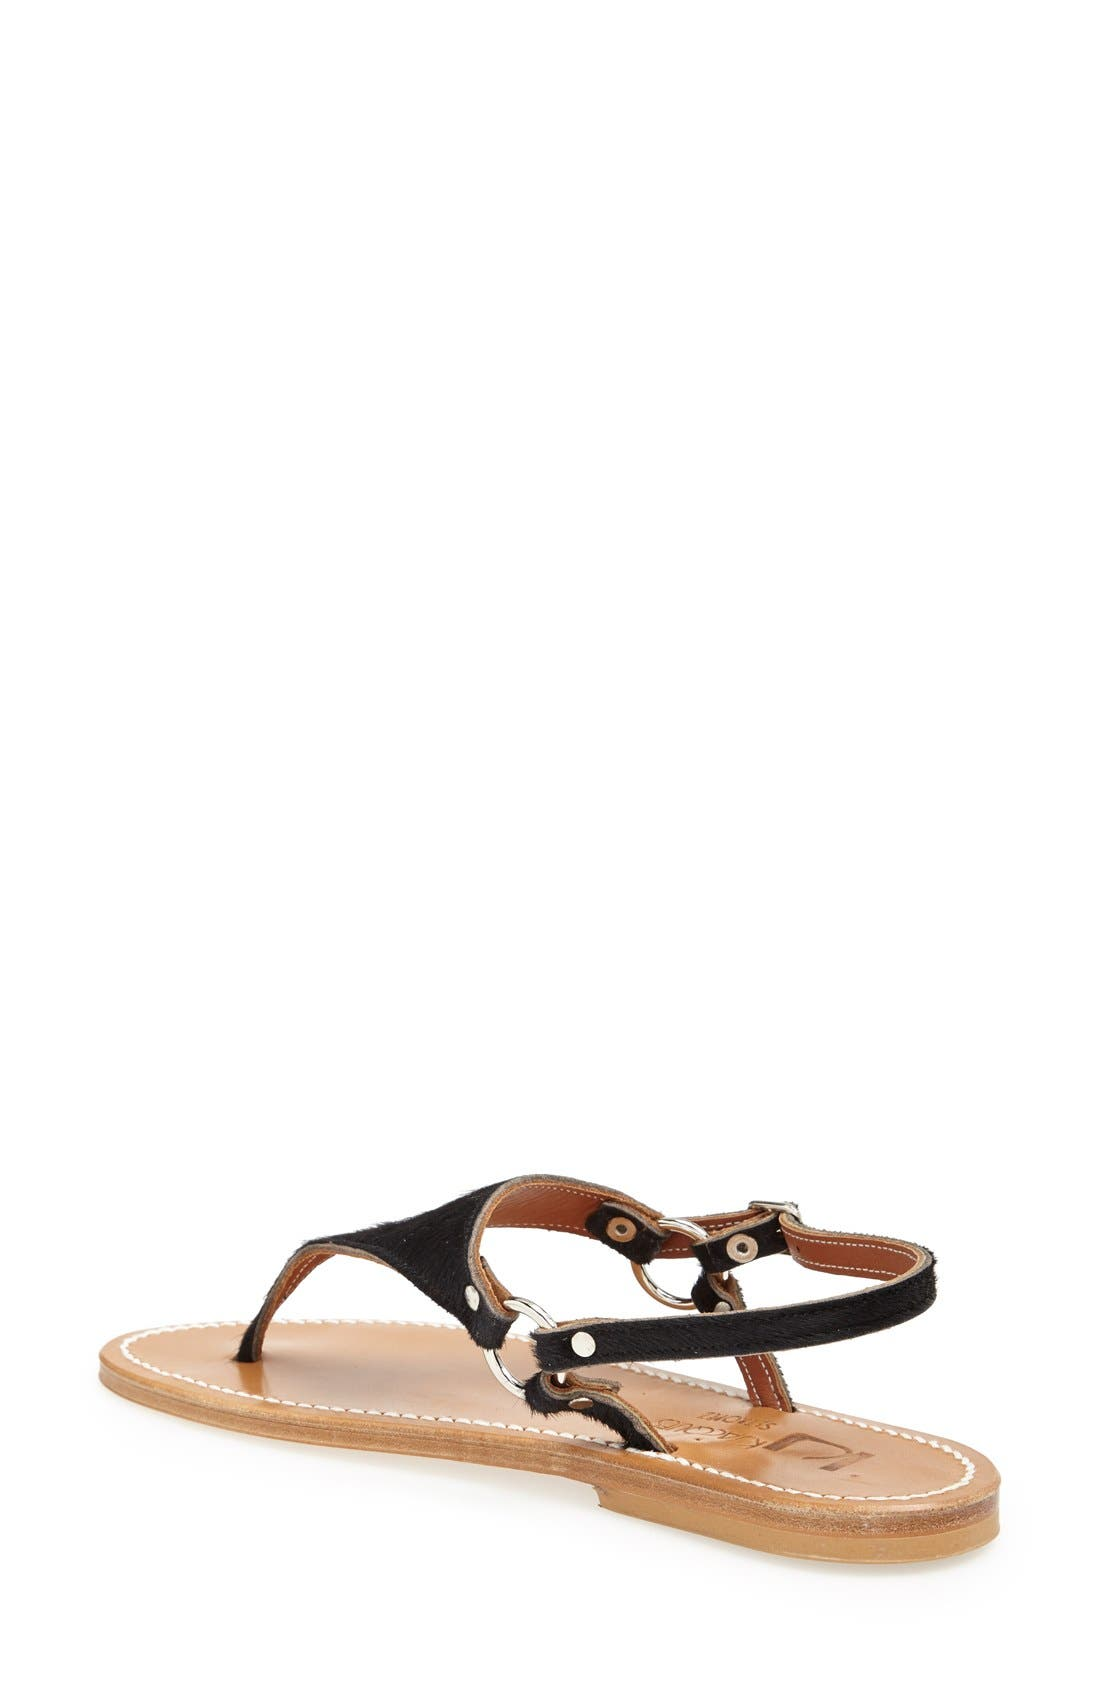 Alternate Image 2  - K.Jacques St. Tropez 'Triton' V Strap Calf Hair Thong Sandal (Women)